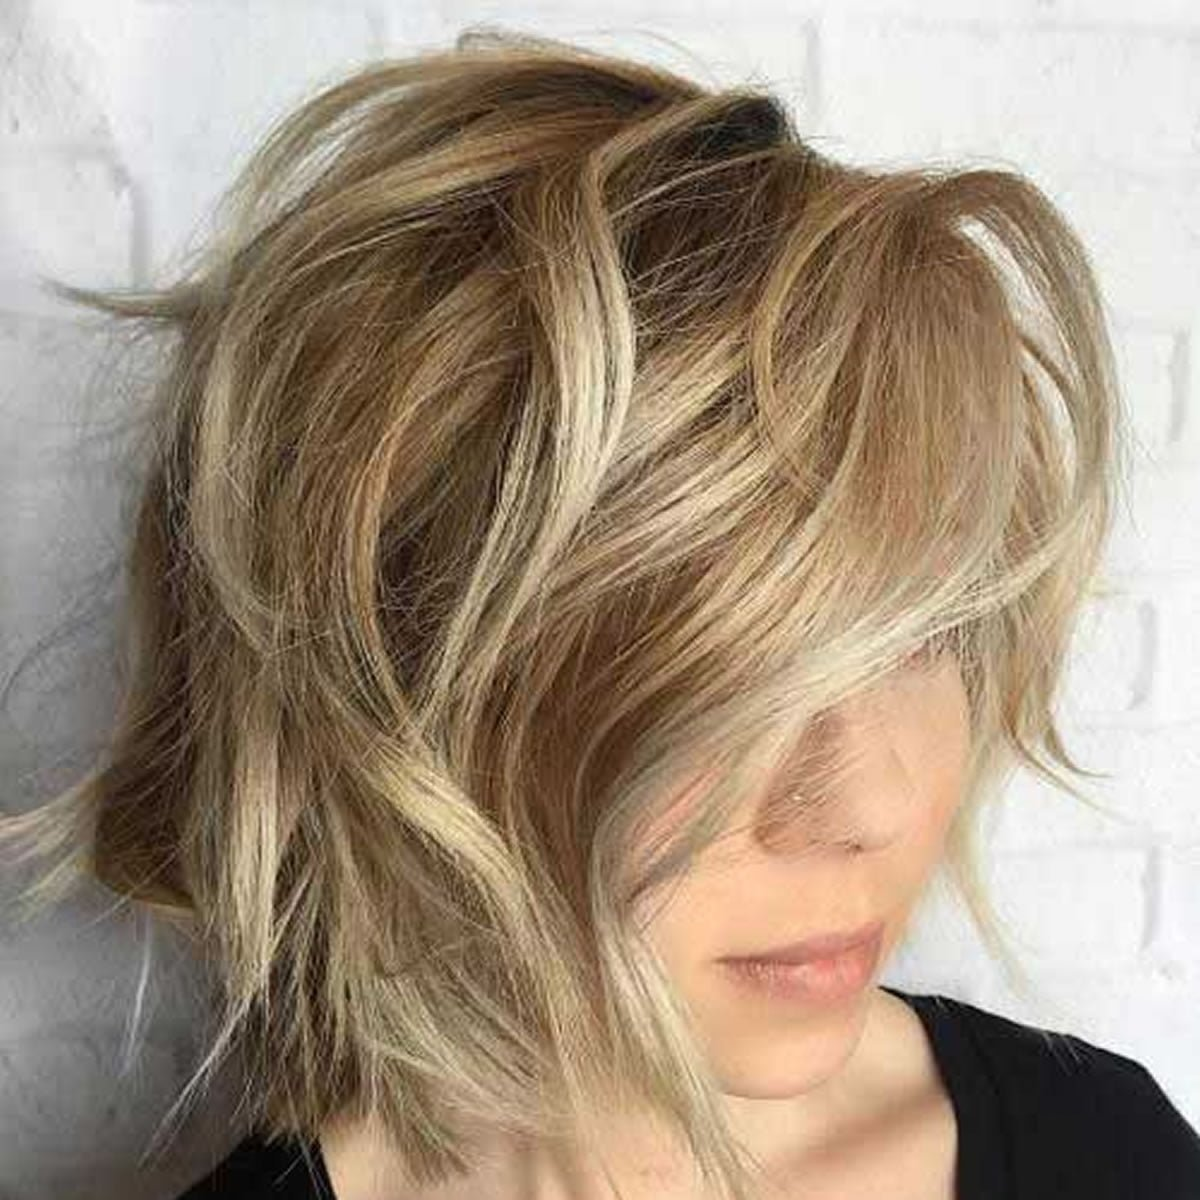 Free 50 The Coolest Short Hairstyles And Hair Colors For Women Wallpaper